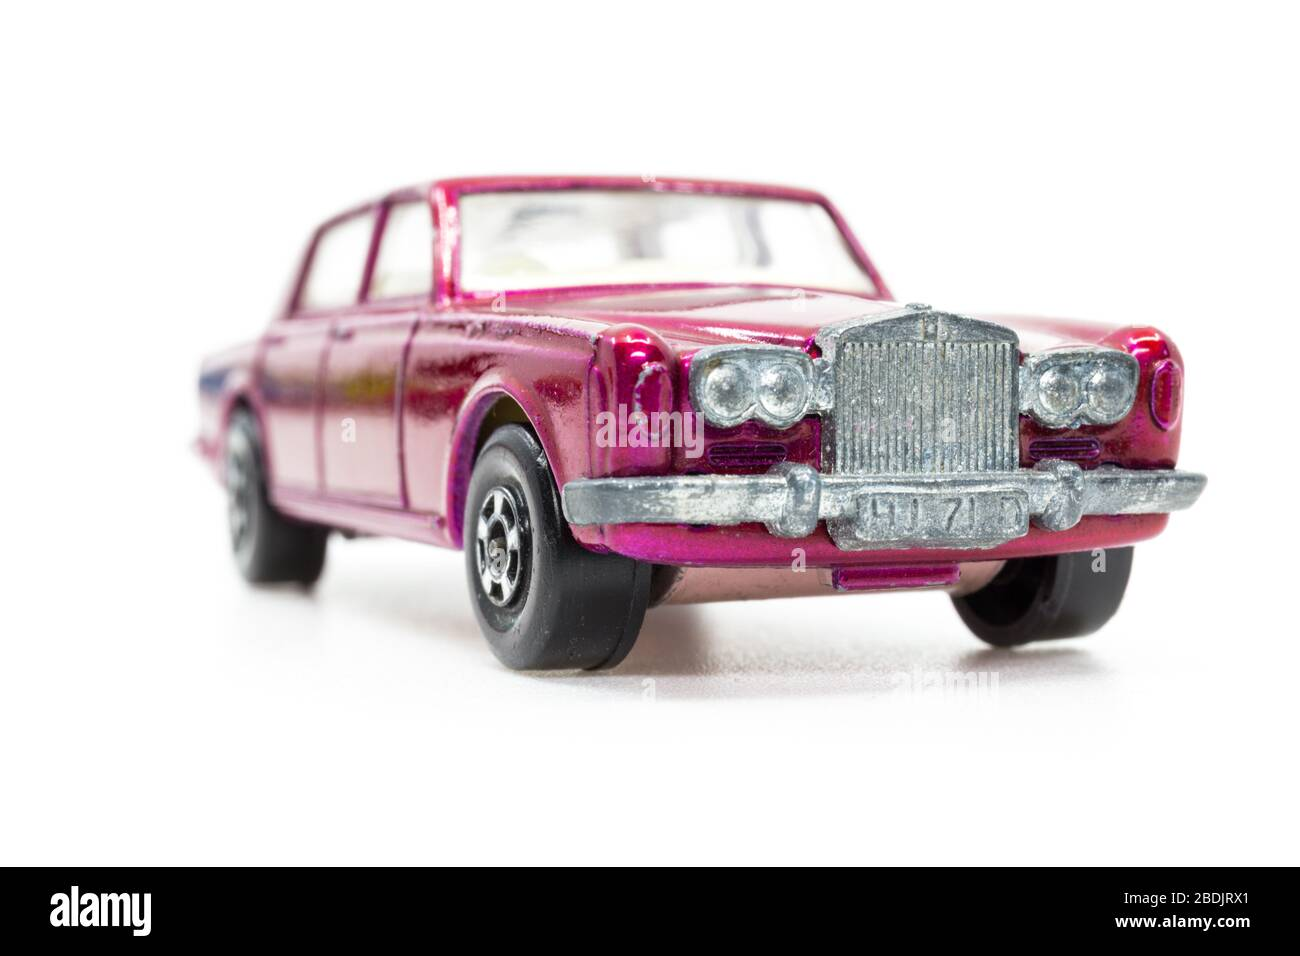 Lesney Products Matchbox Model Toy Car 1 75 Series No 24 Rolls Royce Silver Shadow Stock Photo Alamy